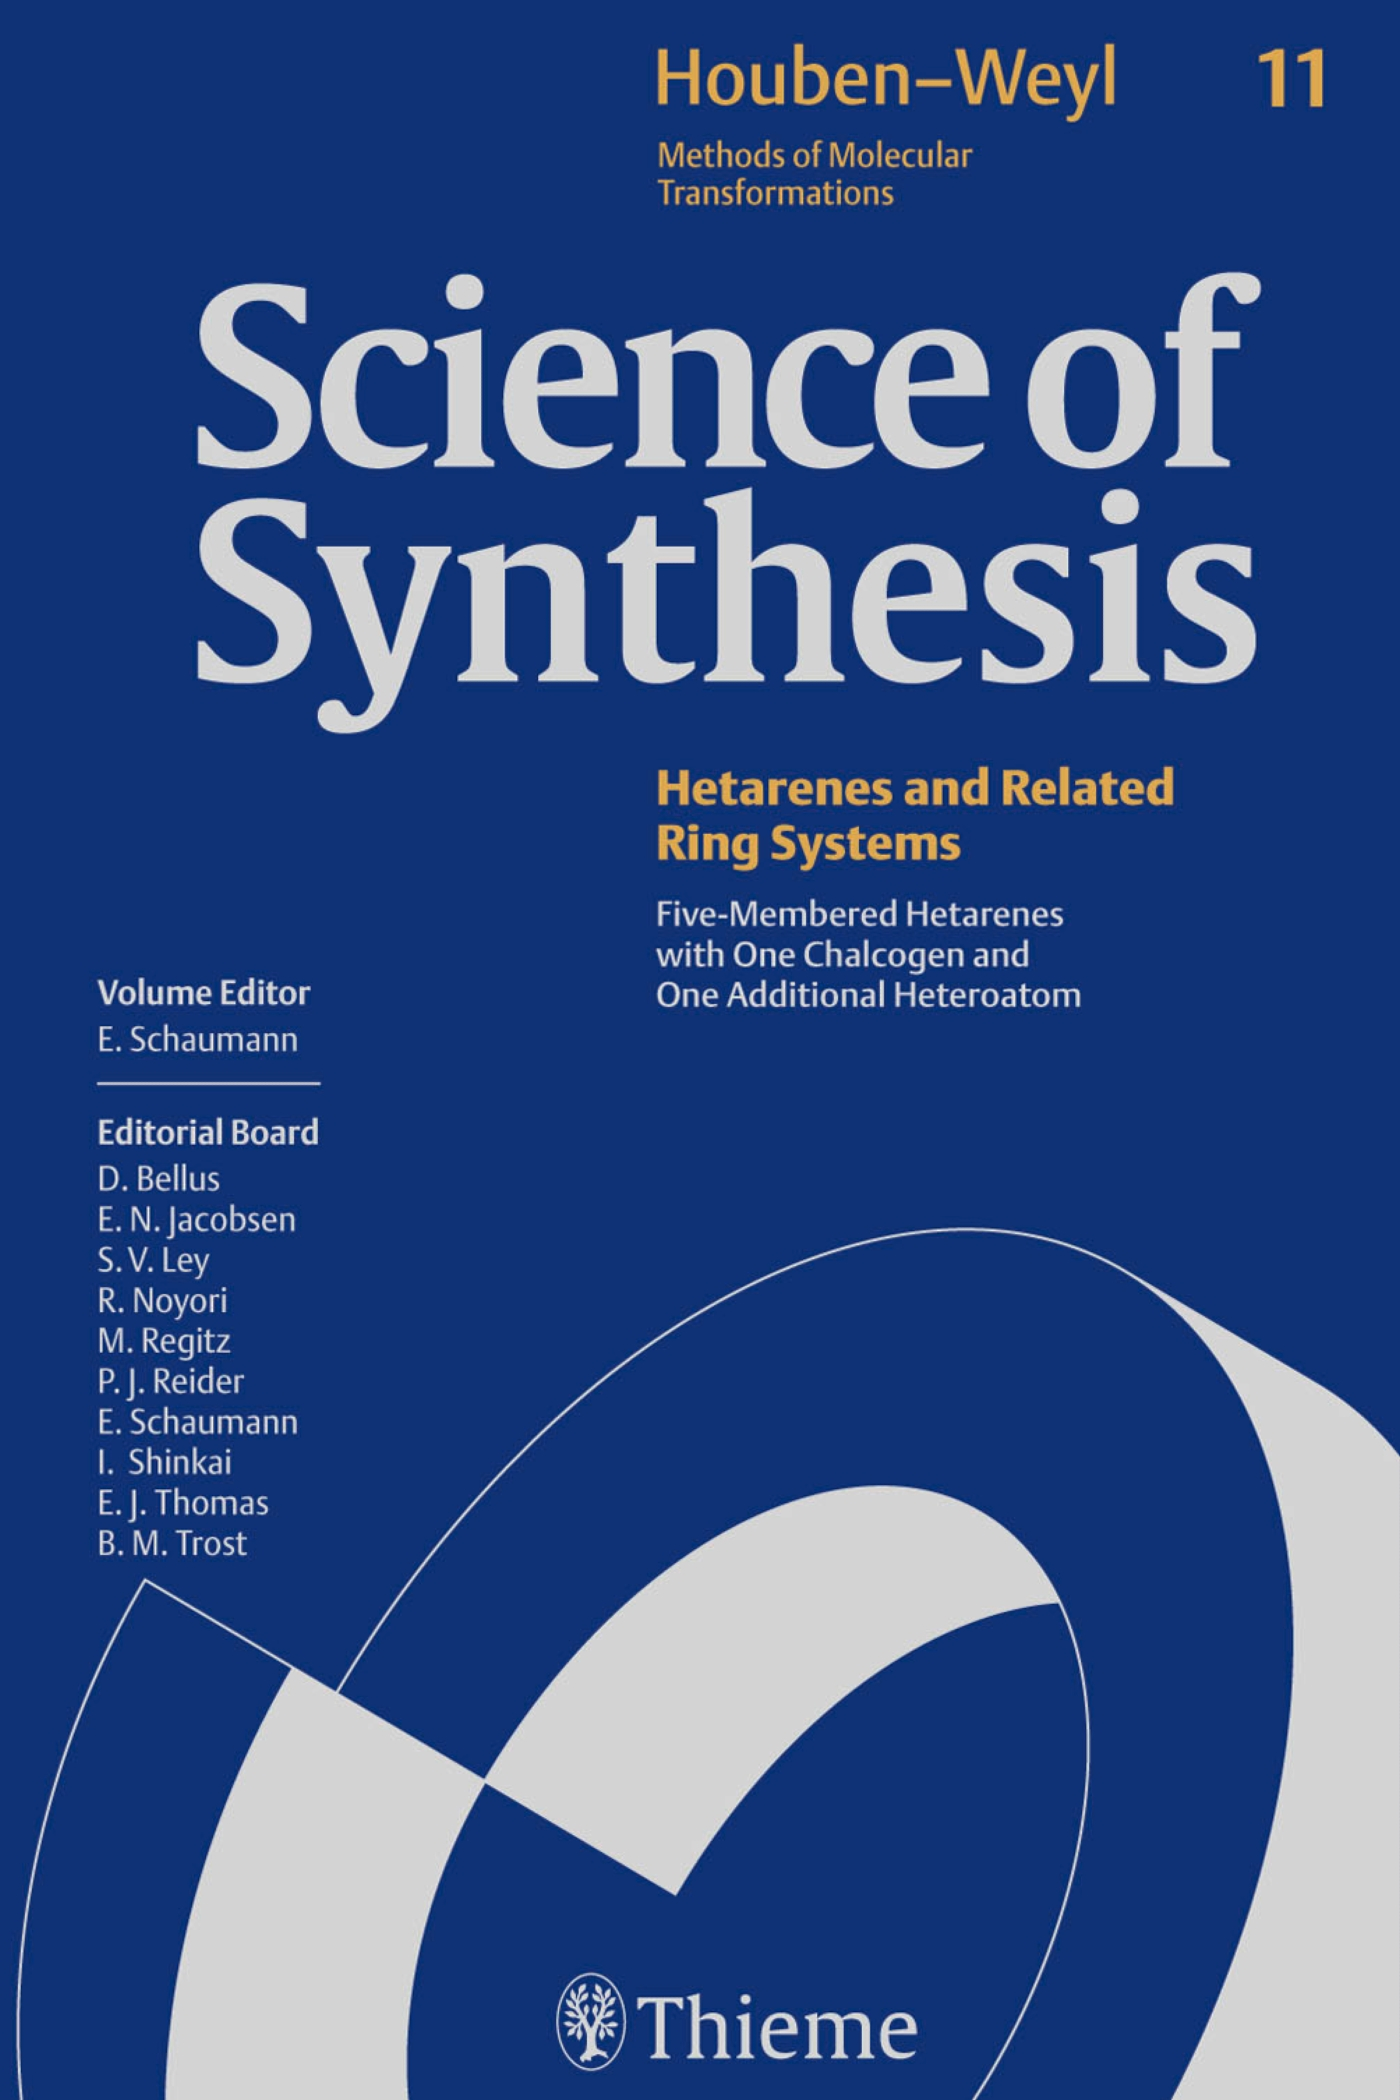 Science of Synthesis: Houben-Weyl Methods of Molecular Transformations  Vol. 11